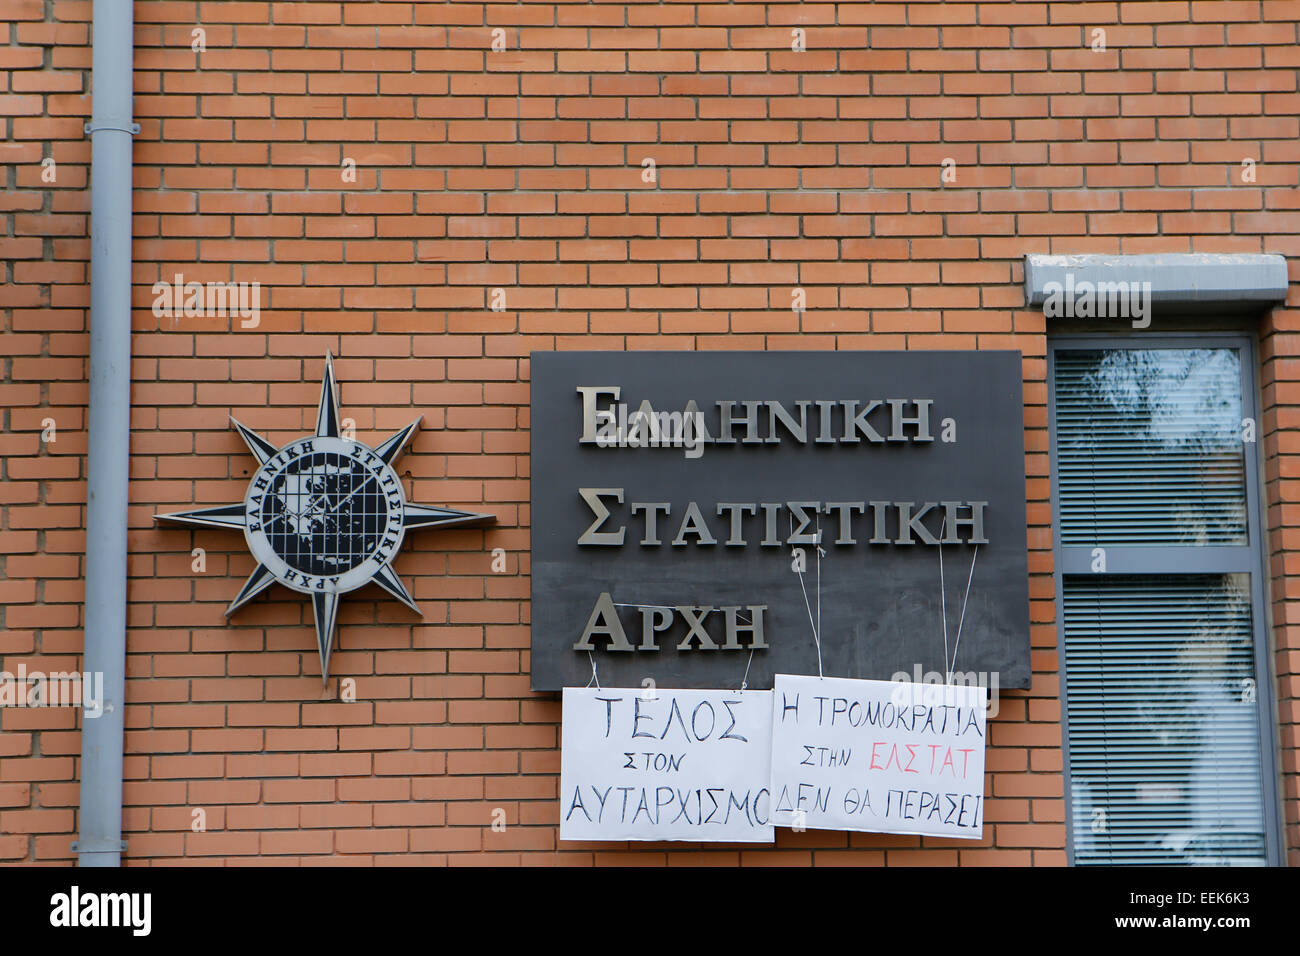 Athens, Greece. 19th January 2015. Protest posters hang on the official sign of the Hellenic Statistical Authority, - Stock Image